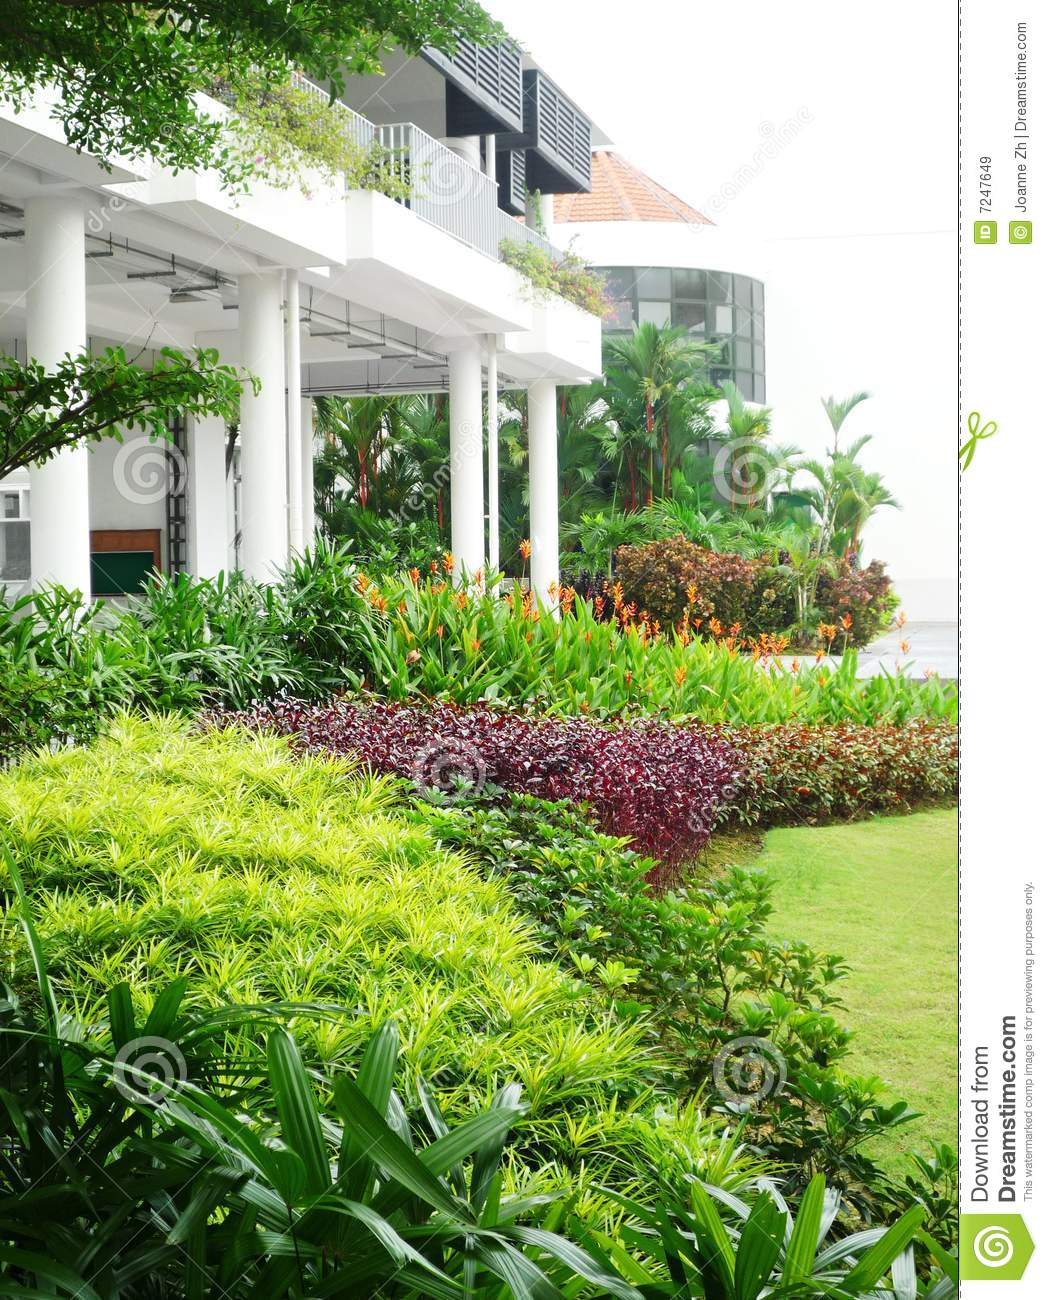 Tropical landscaping design stock image image 7247649 for Landscape plants of the southeast